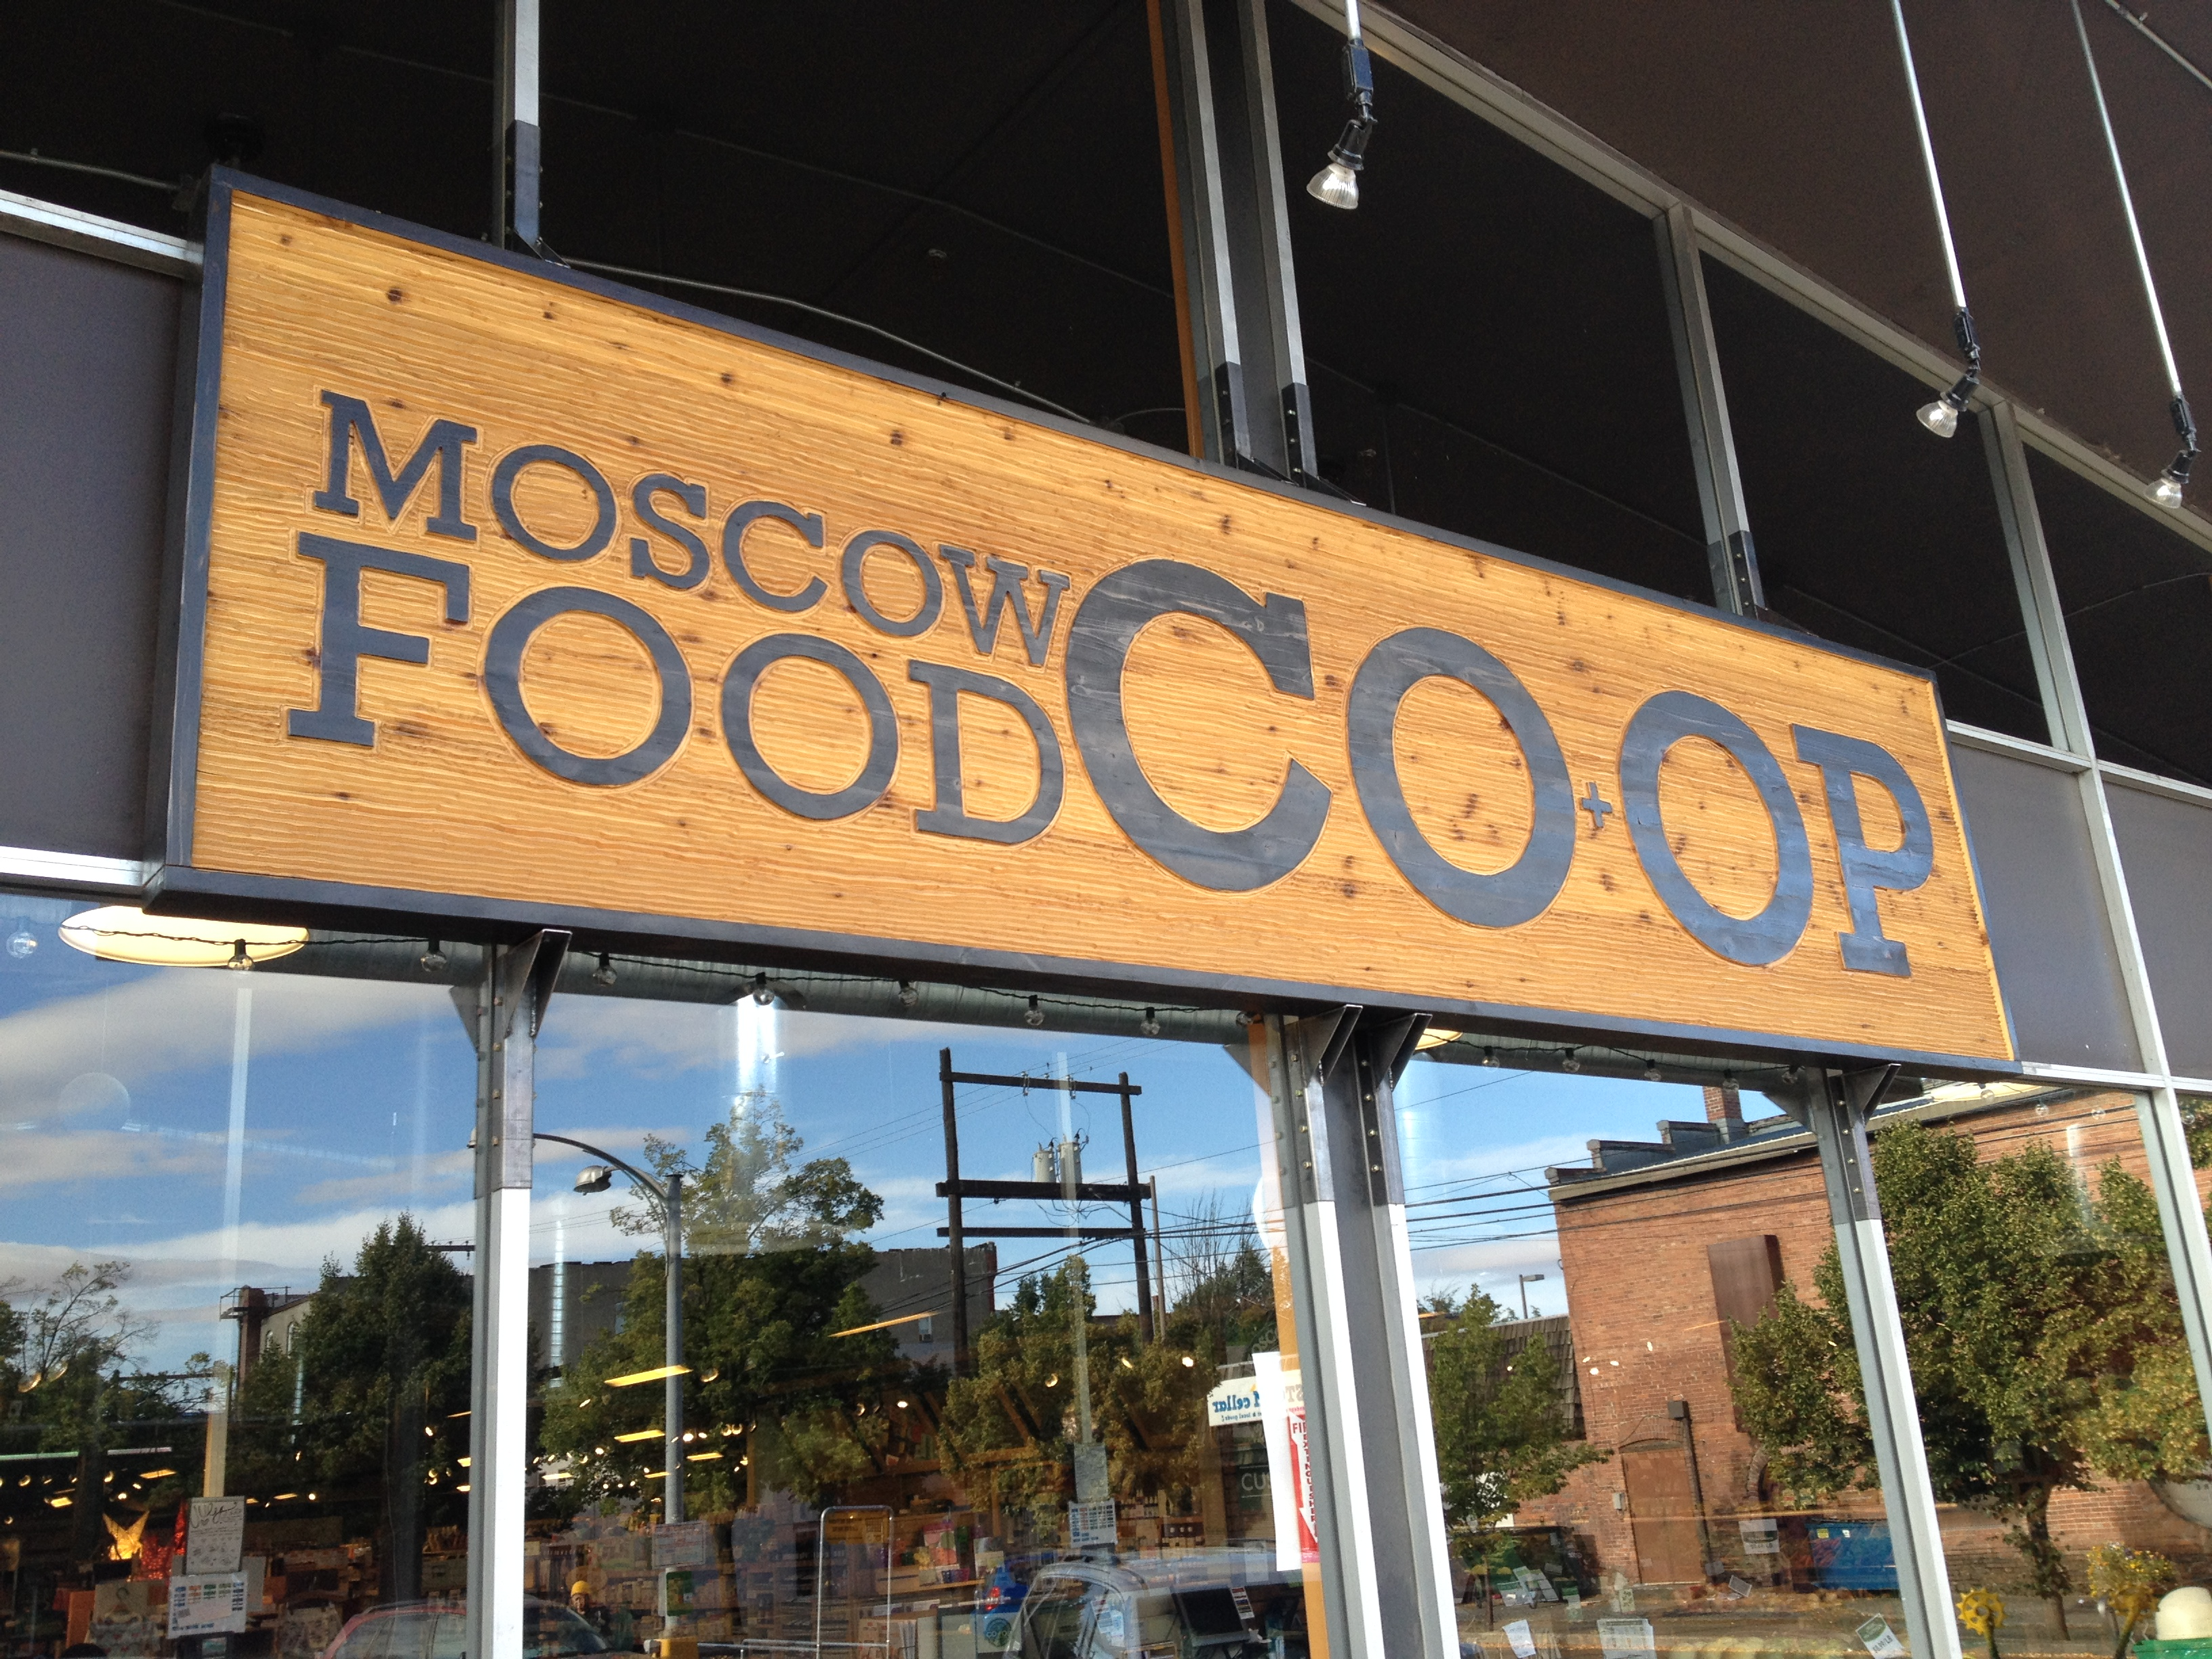 Moscow Food Co-Op, front sign